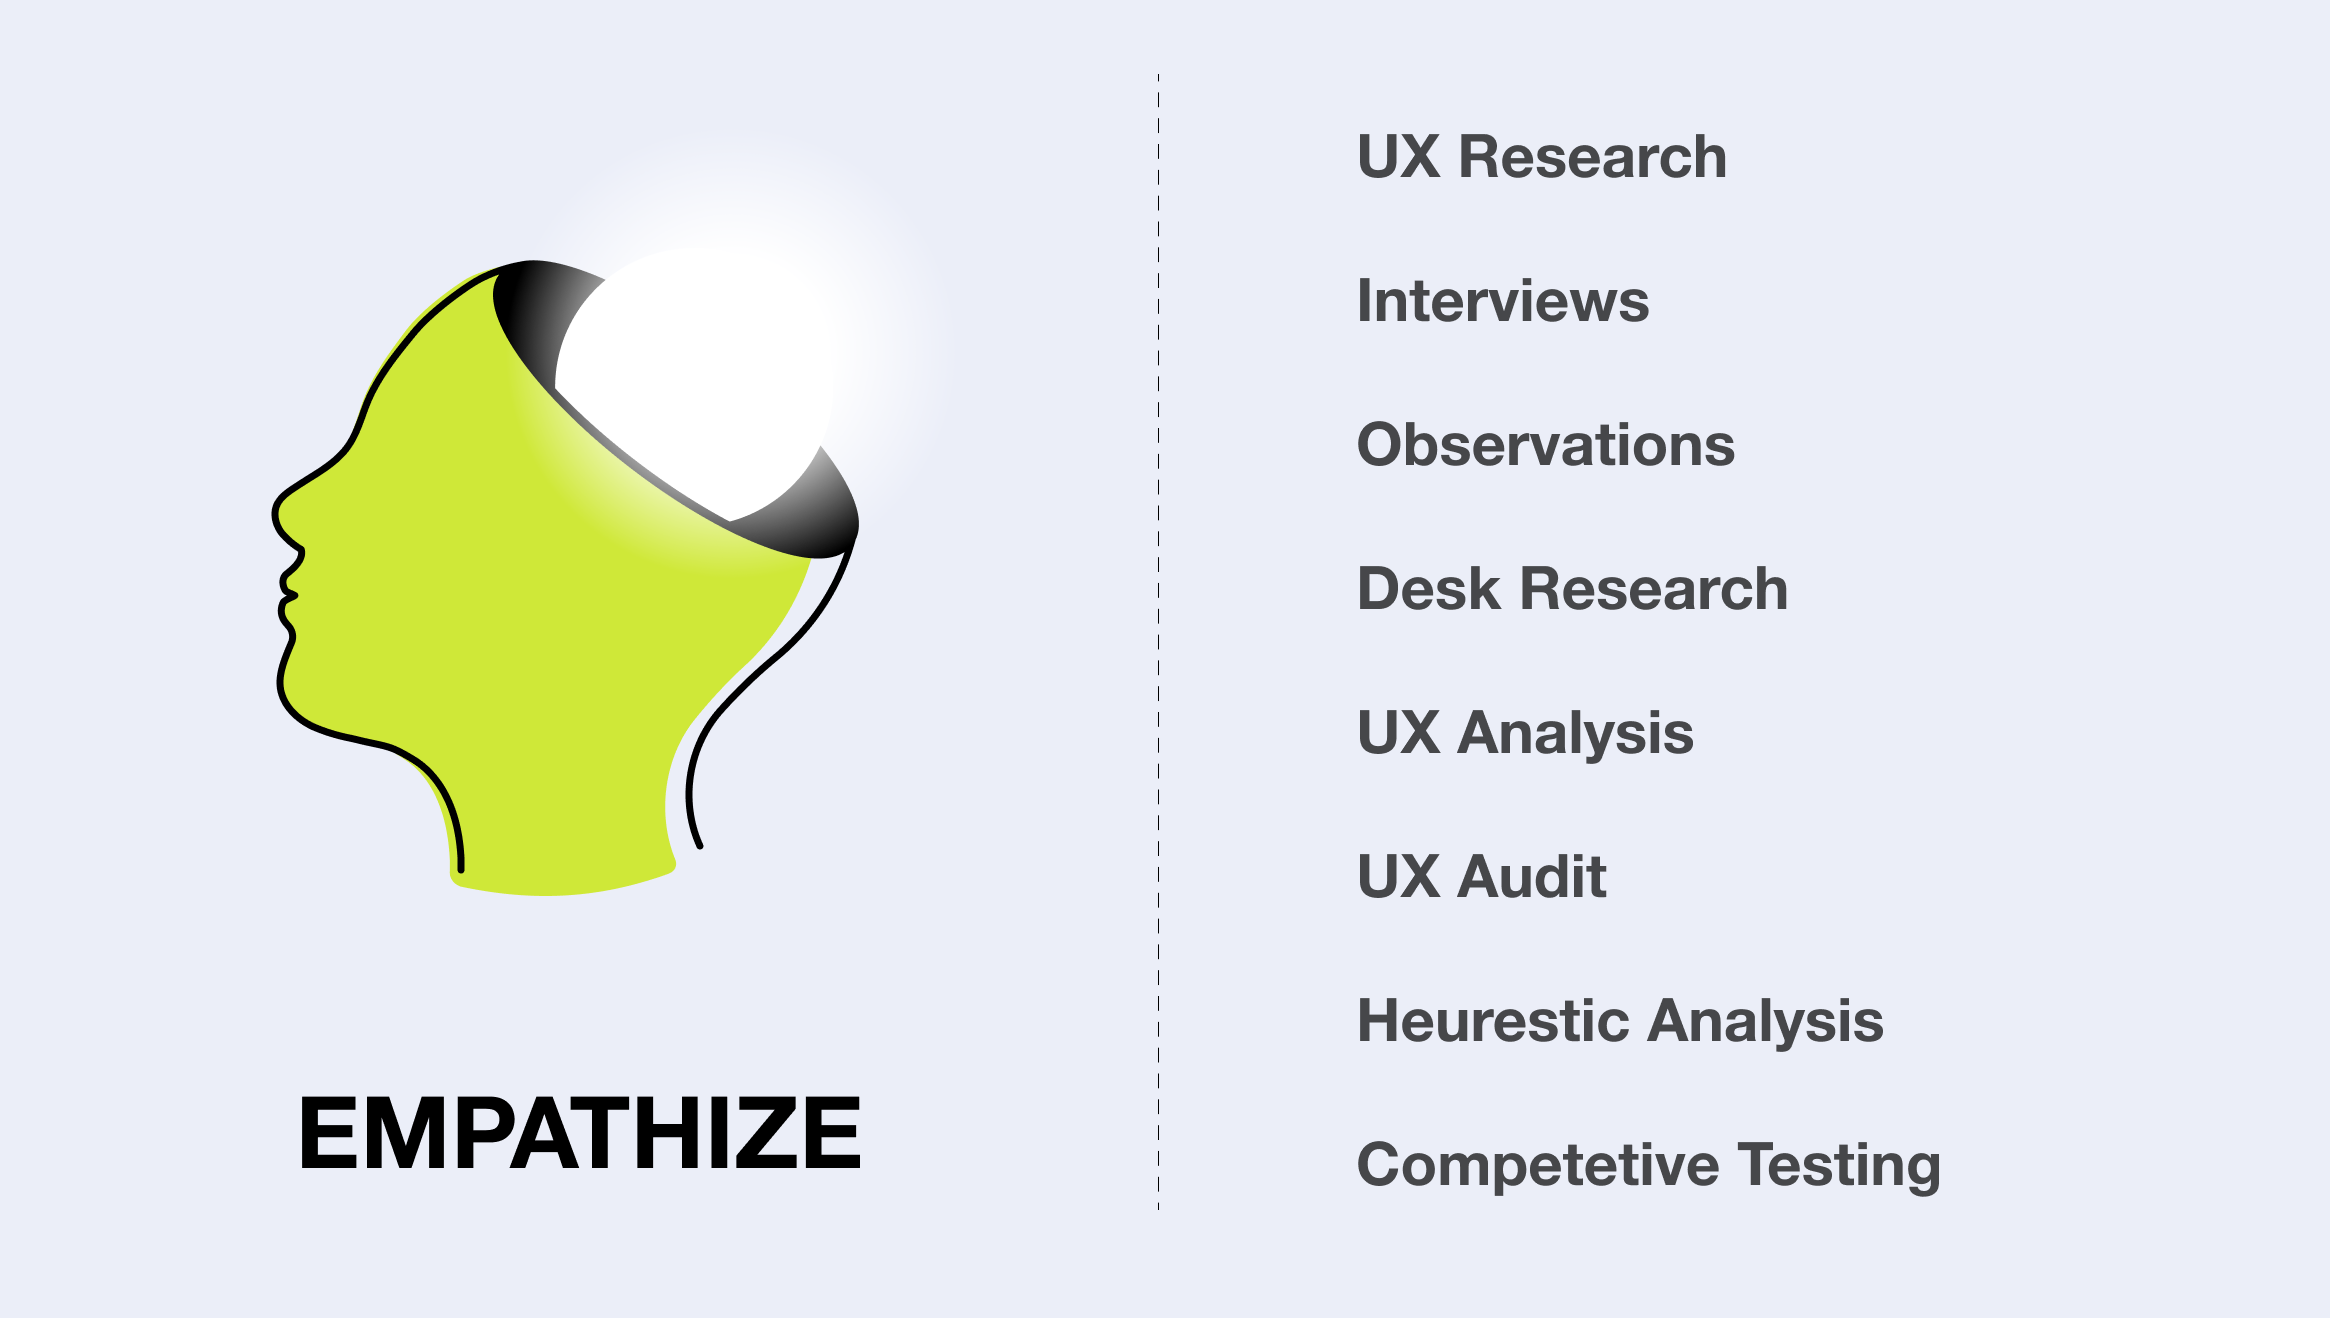 The Emphatize phase allows you to get to know your users and understand their behavior and needs.